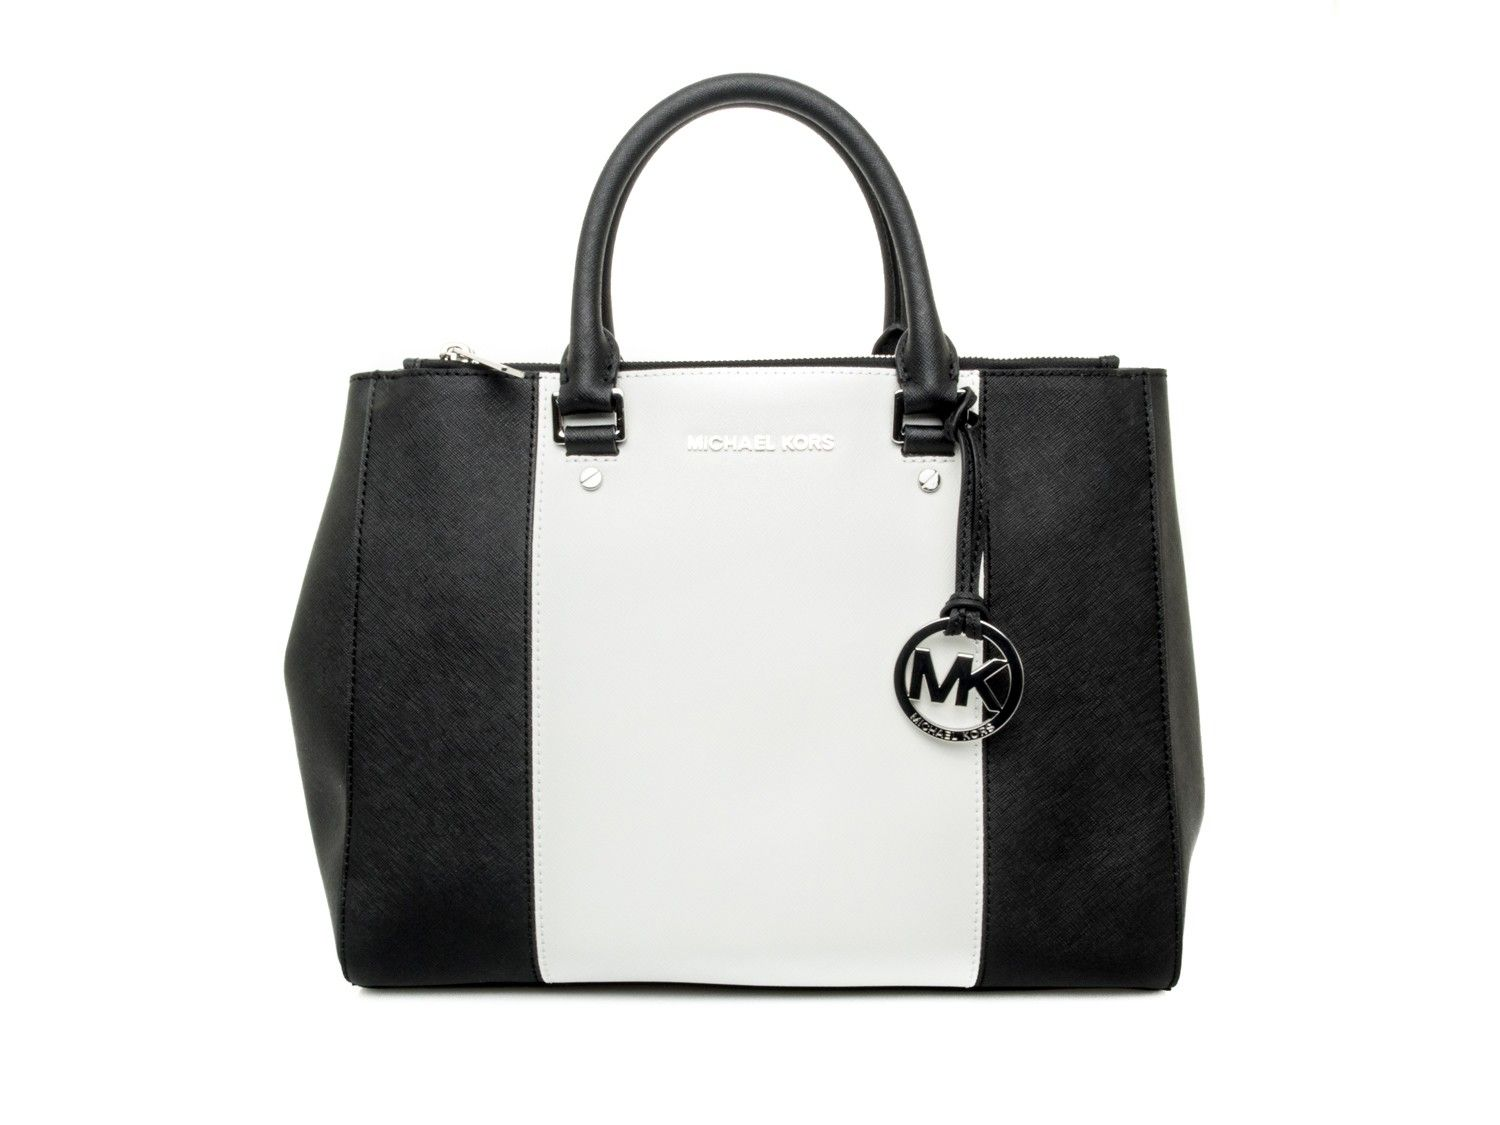 Michael kors bags in dubai - Find This Pin And More On Michael Kors Bags For Women